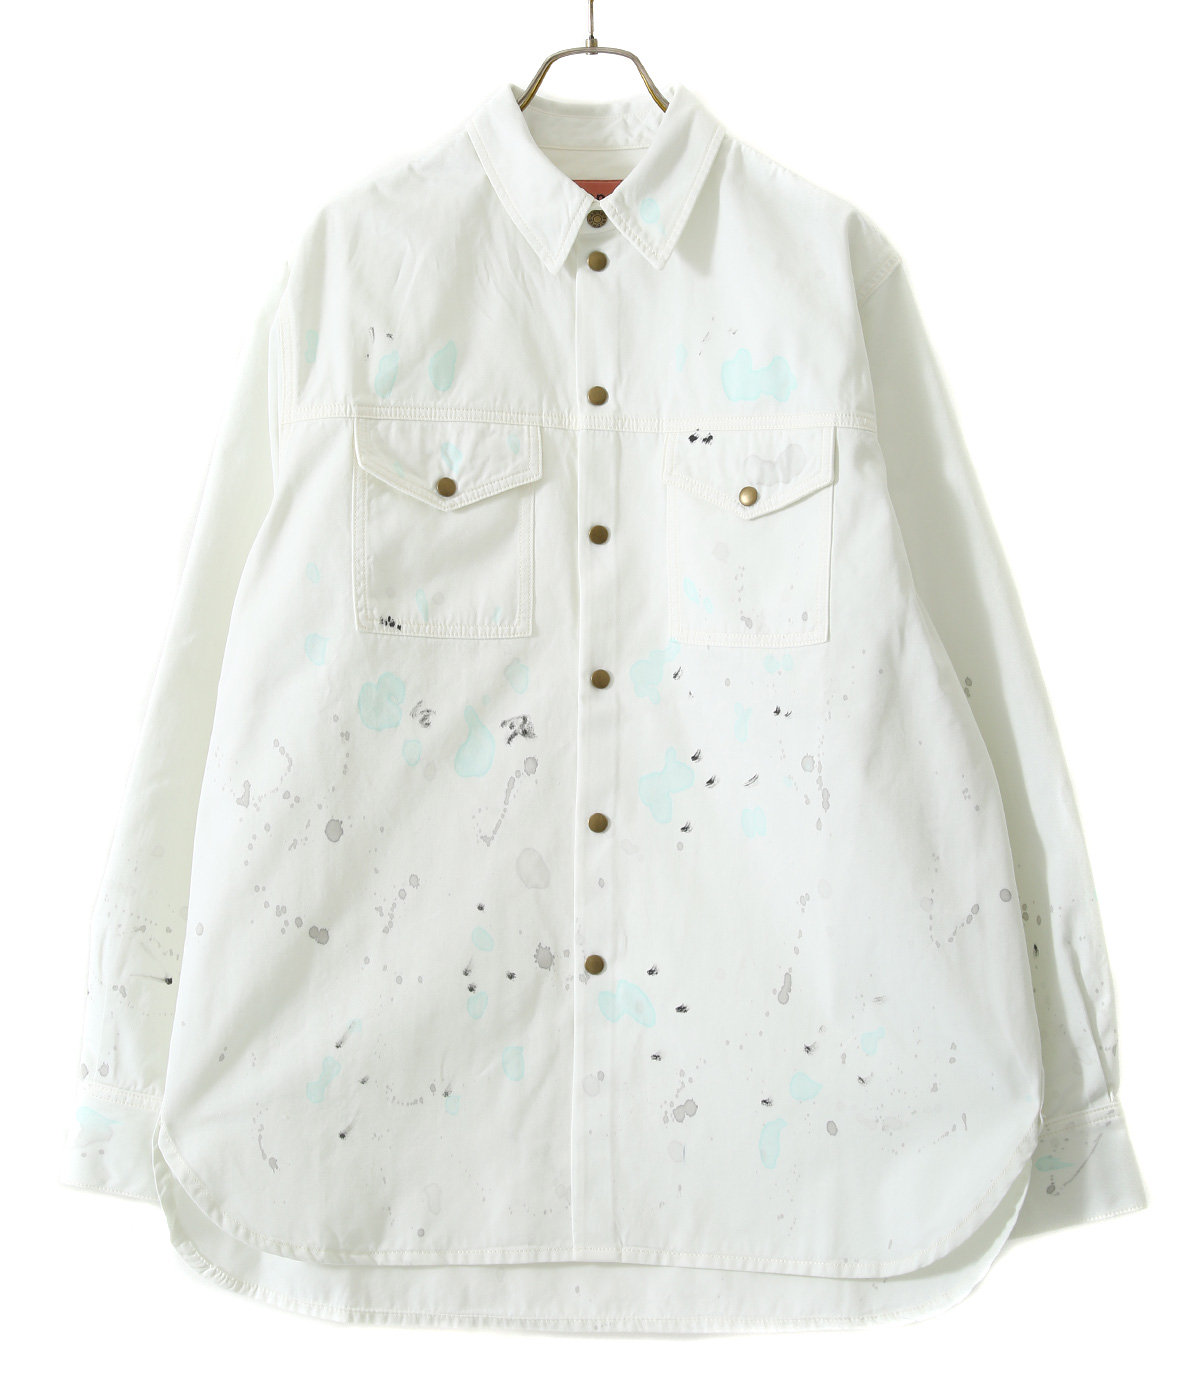 OVERSHIRT UNI PAINTER SHIRTS